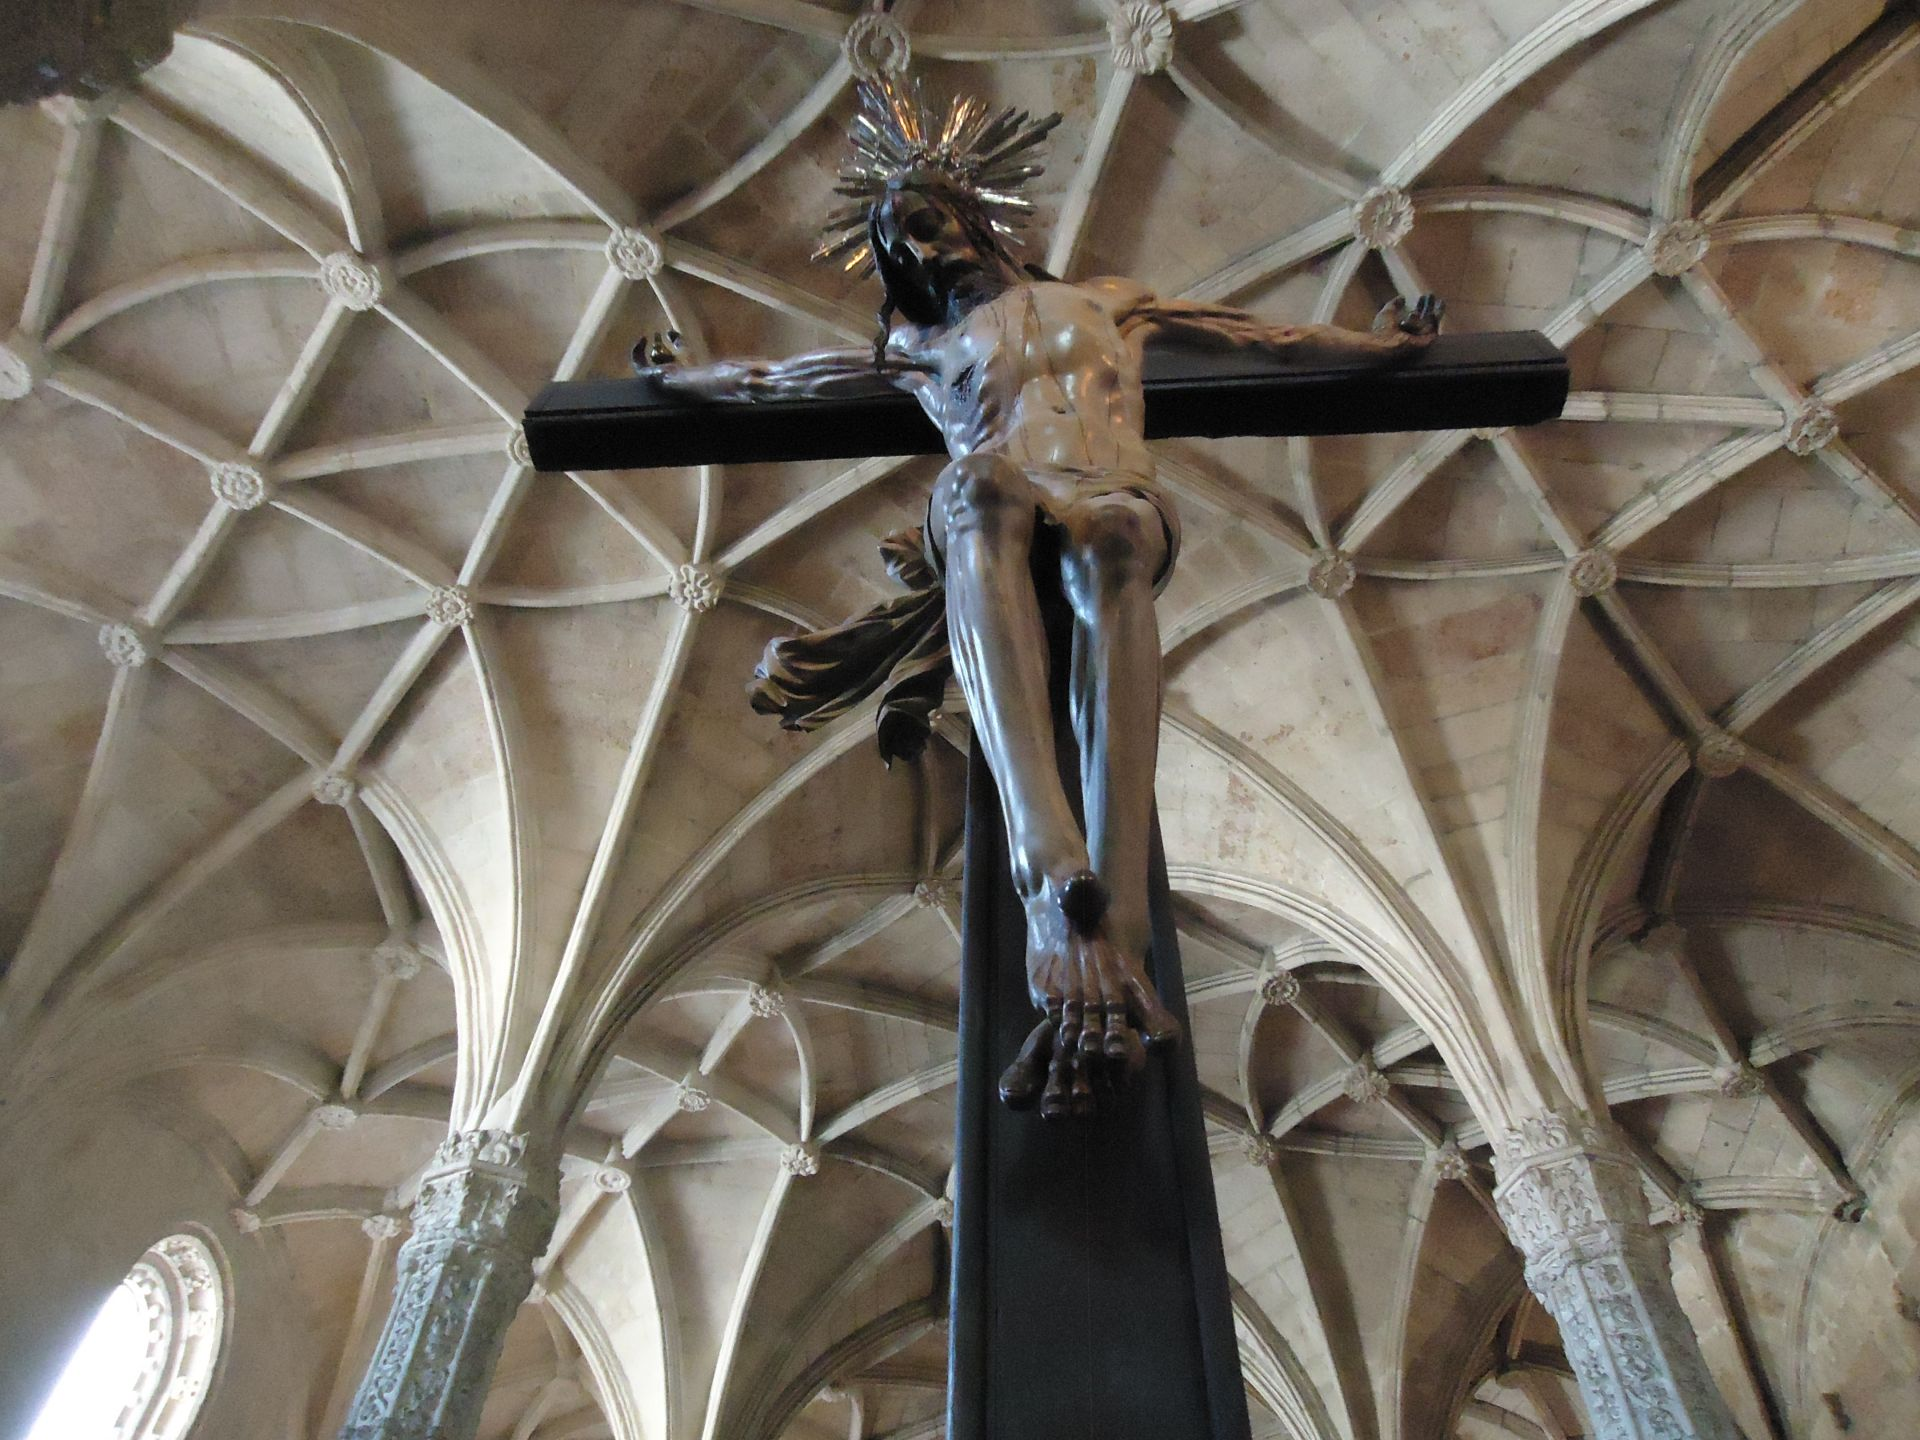 cross, christ, dome, jesus, sculpture, belen, the ceiling, jesus christ, monastery, crucified, boveda, jeronimos, lisbon,  crucifijo,  salvacion,  redencion,  muerte,  viernes santo,  crucifixion, holy week